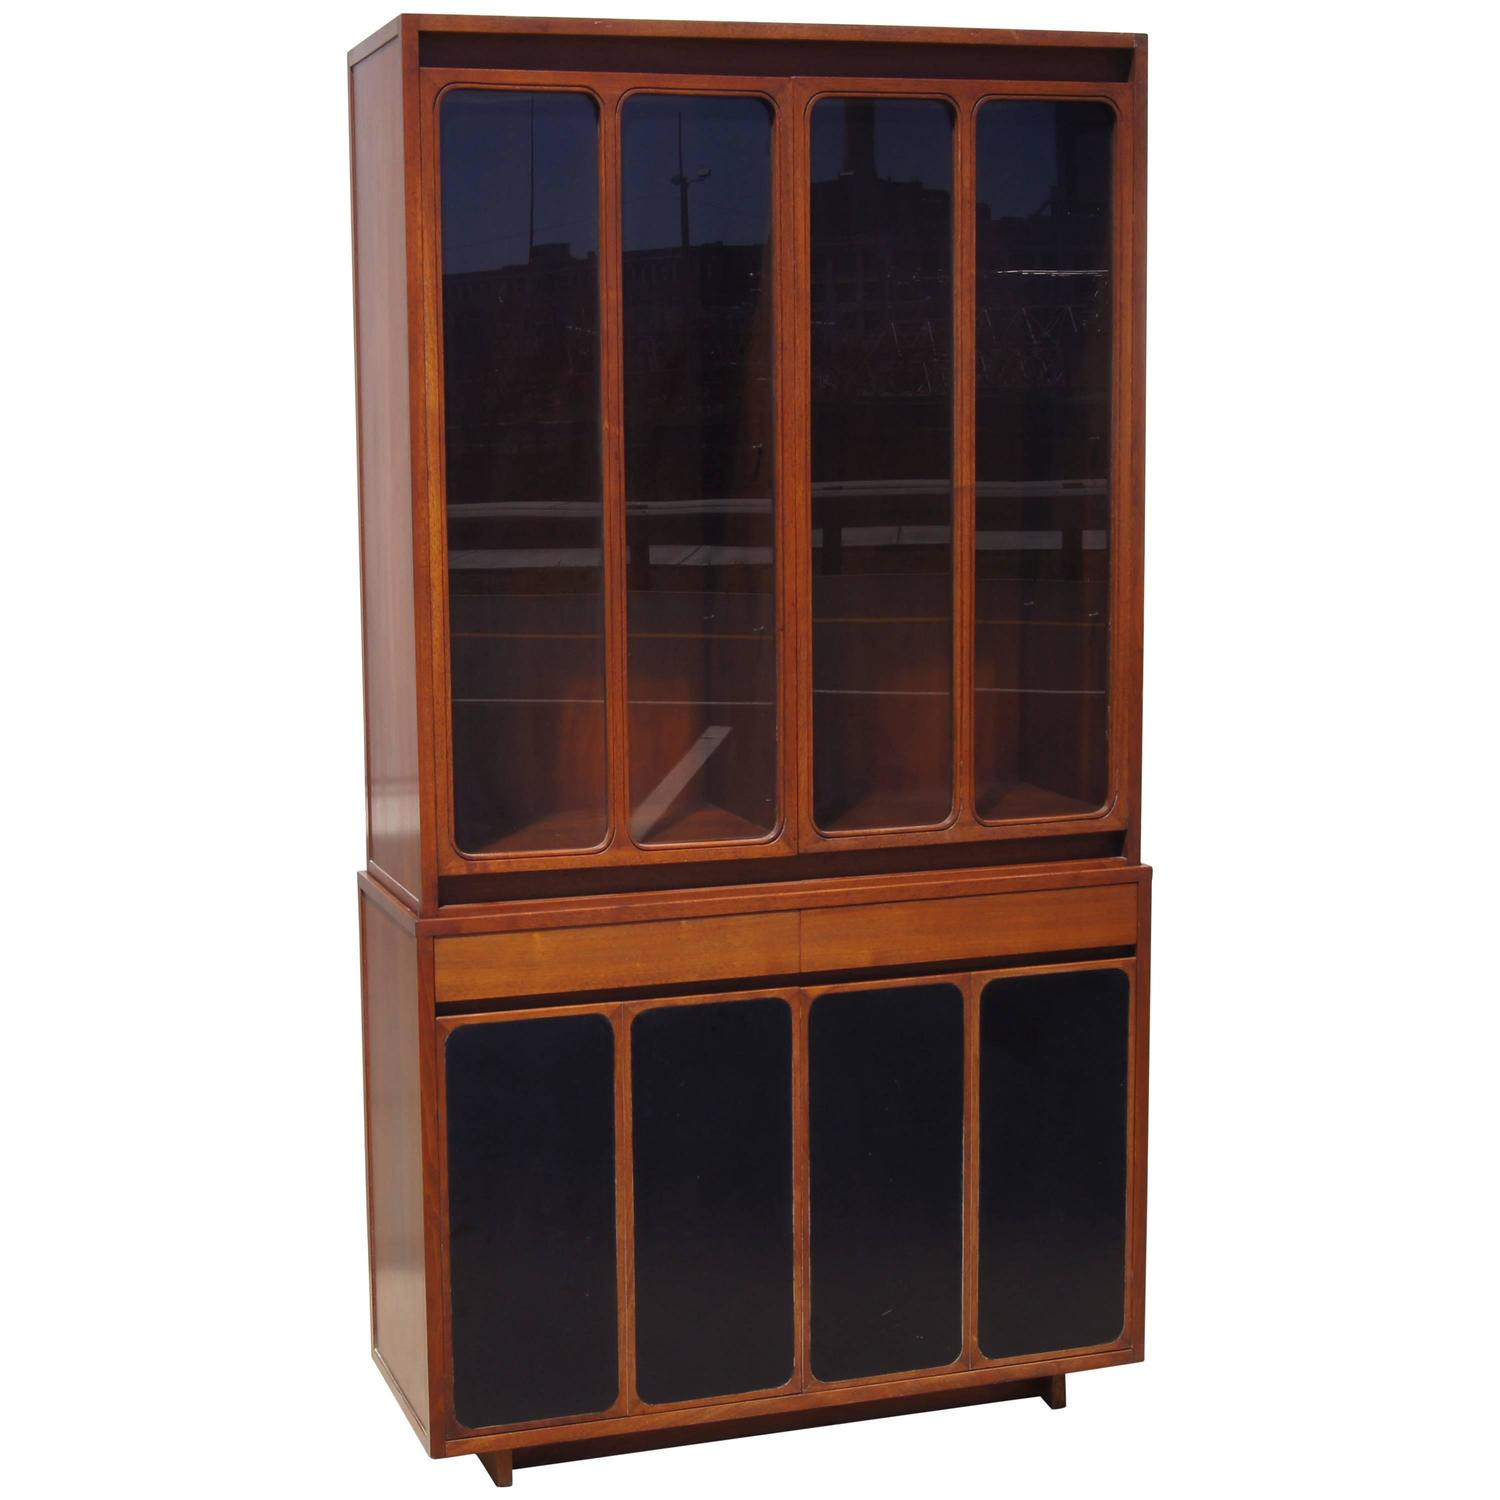 Tall Cabinet With Glass Doors And Leather Panels By Paul